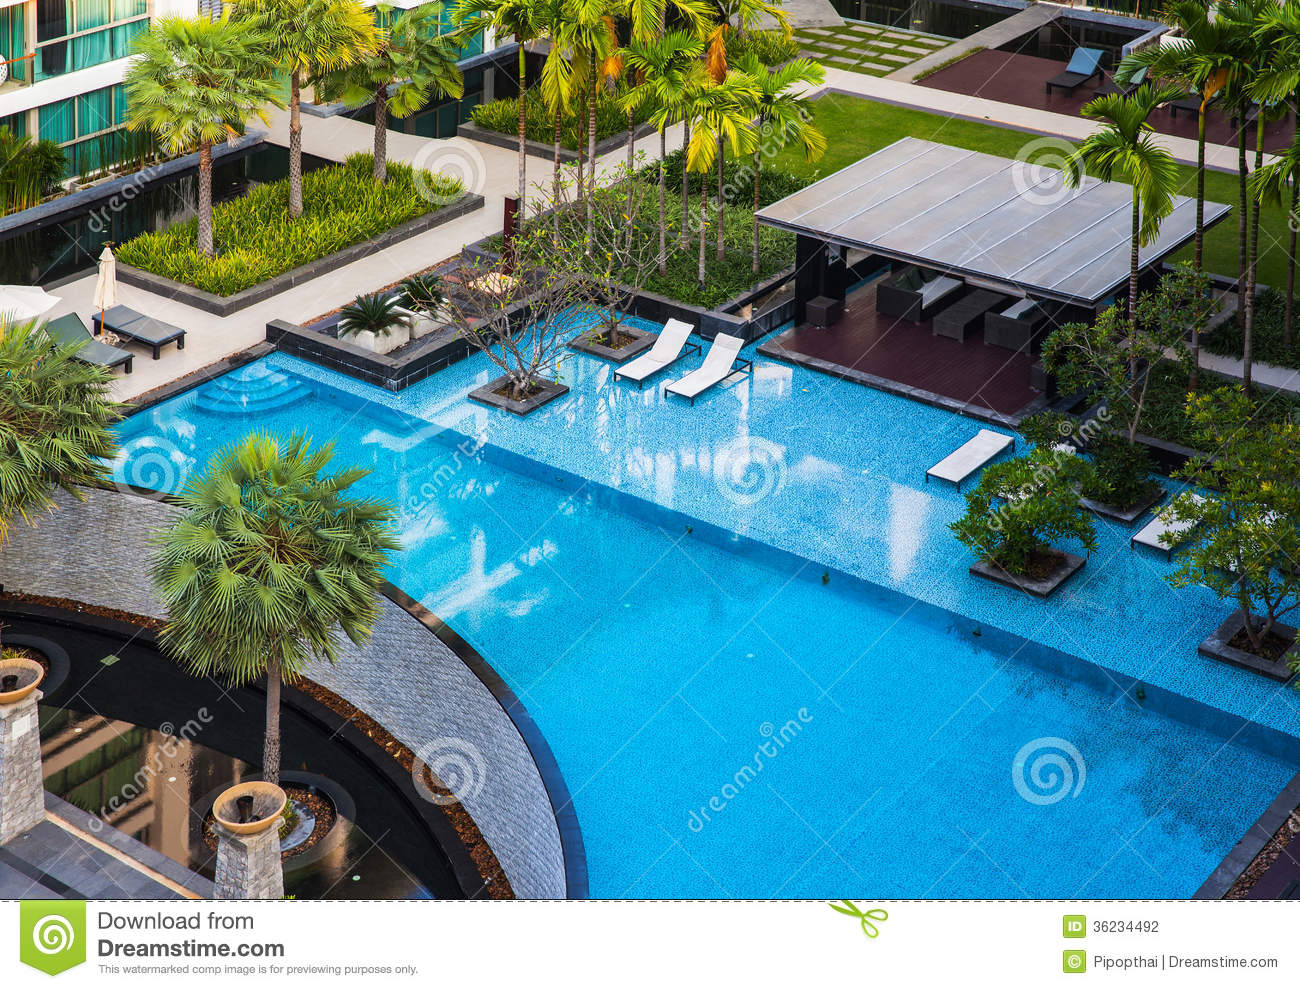 Mr Gardener Pool Reinigungsset Standard Swimming Pool With Beautiful Landscape Stock Photography